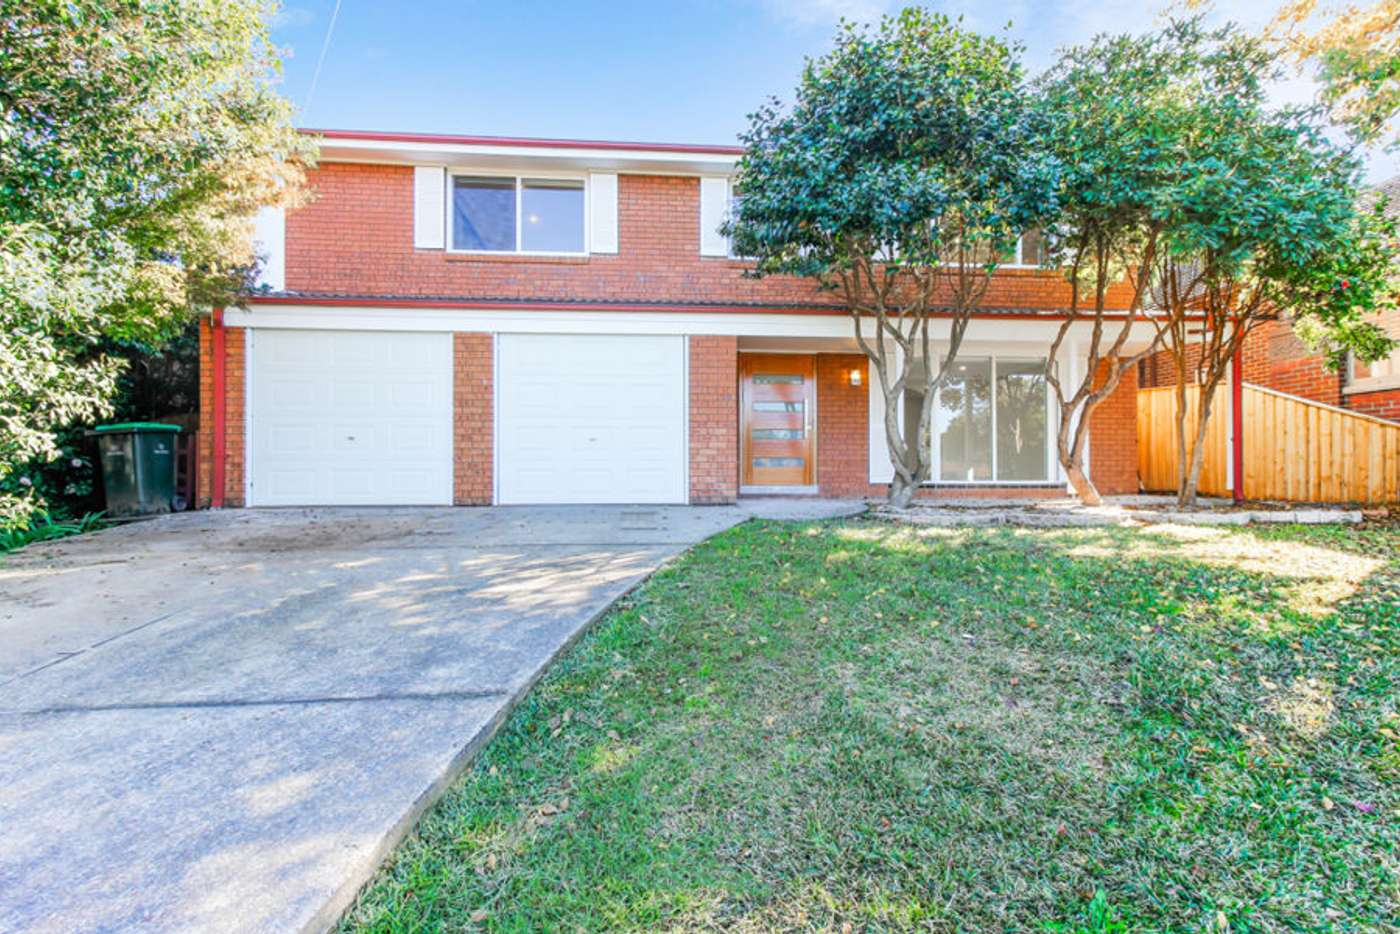 Main view of Homely house listing, 24 Rickard Street, Denistone East NSW 2112